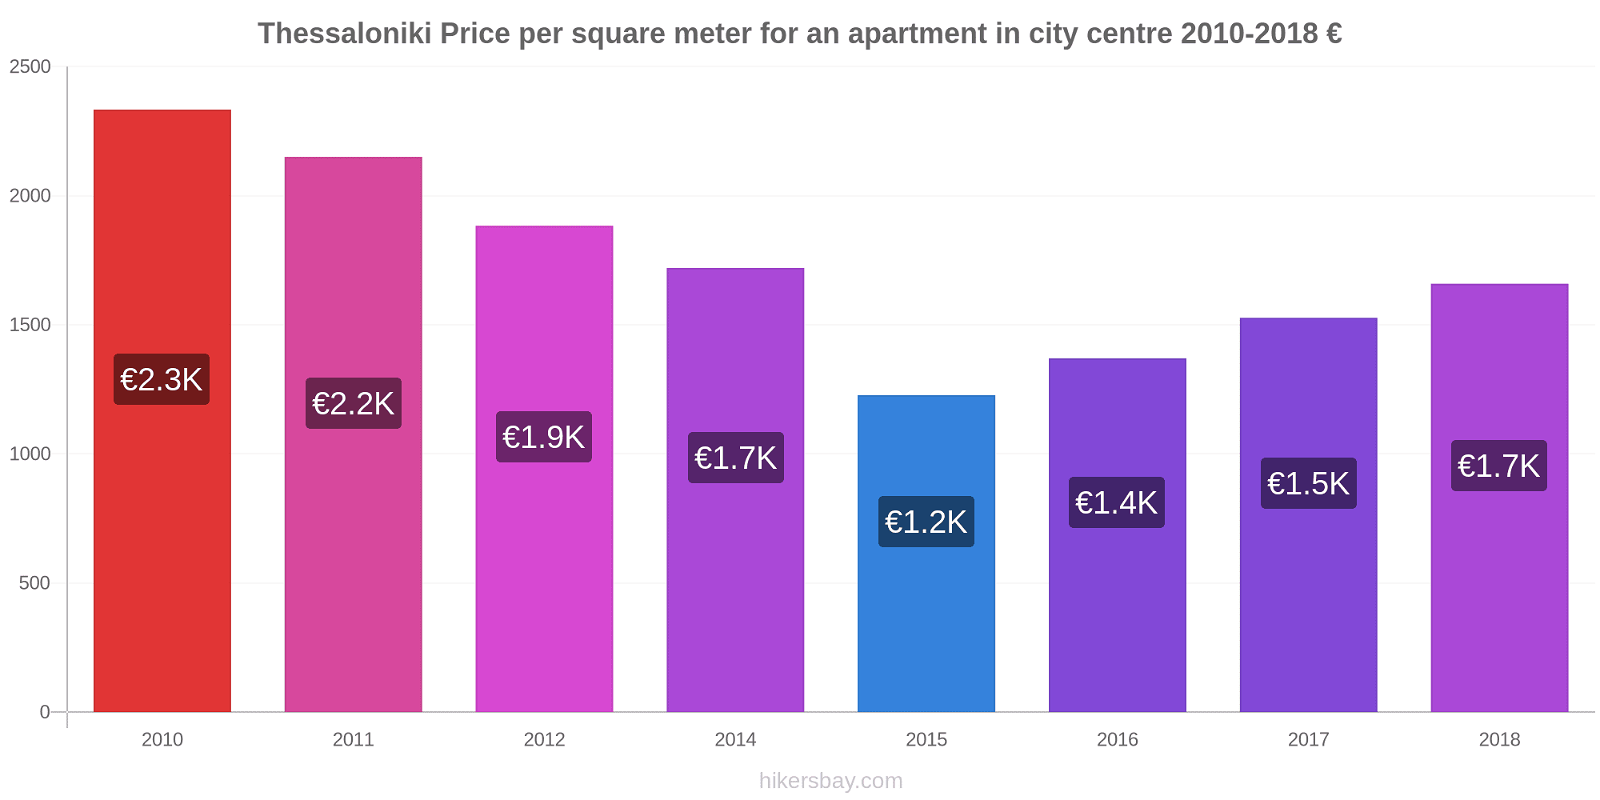 Thessaloniki price changes Price per square meter for an apartment in city centre hikersbay.com